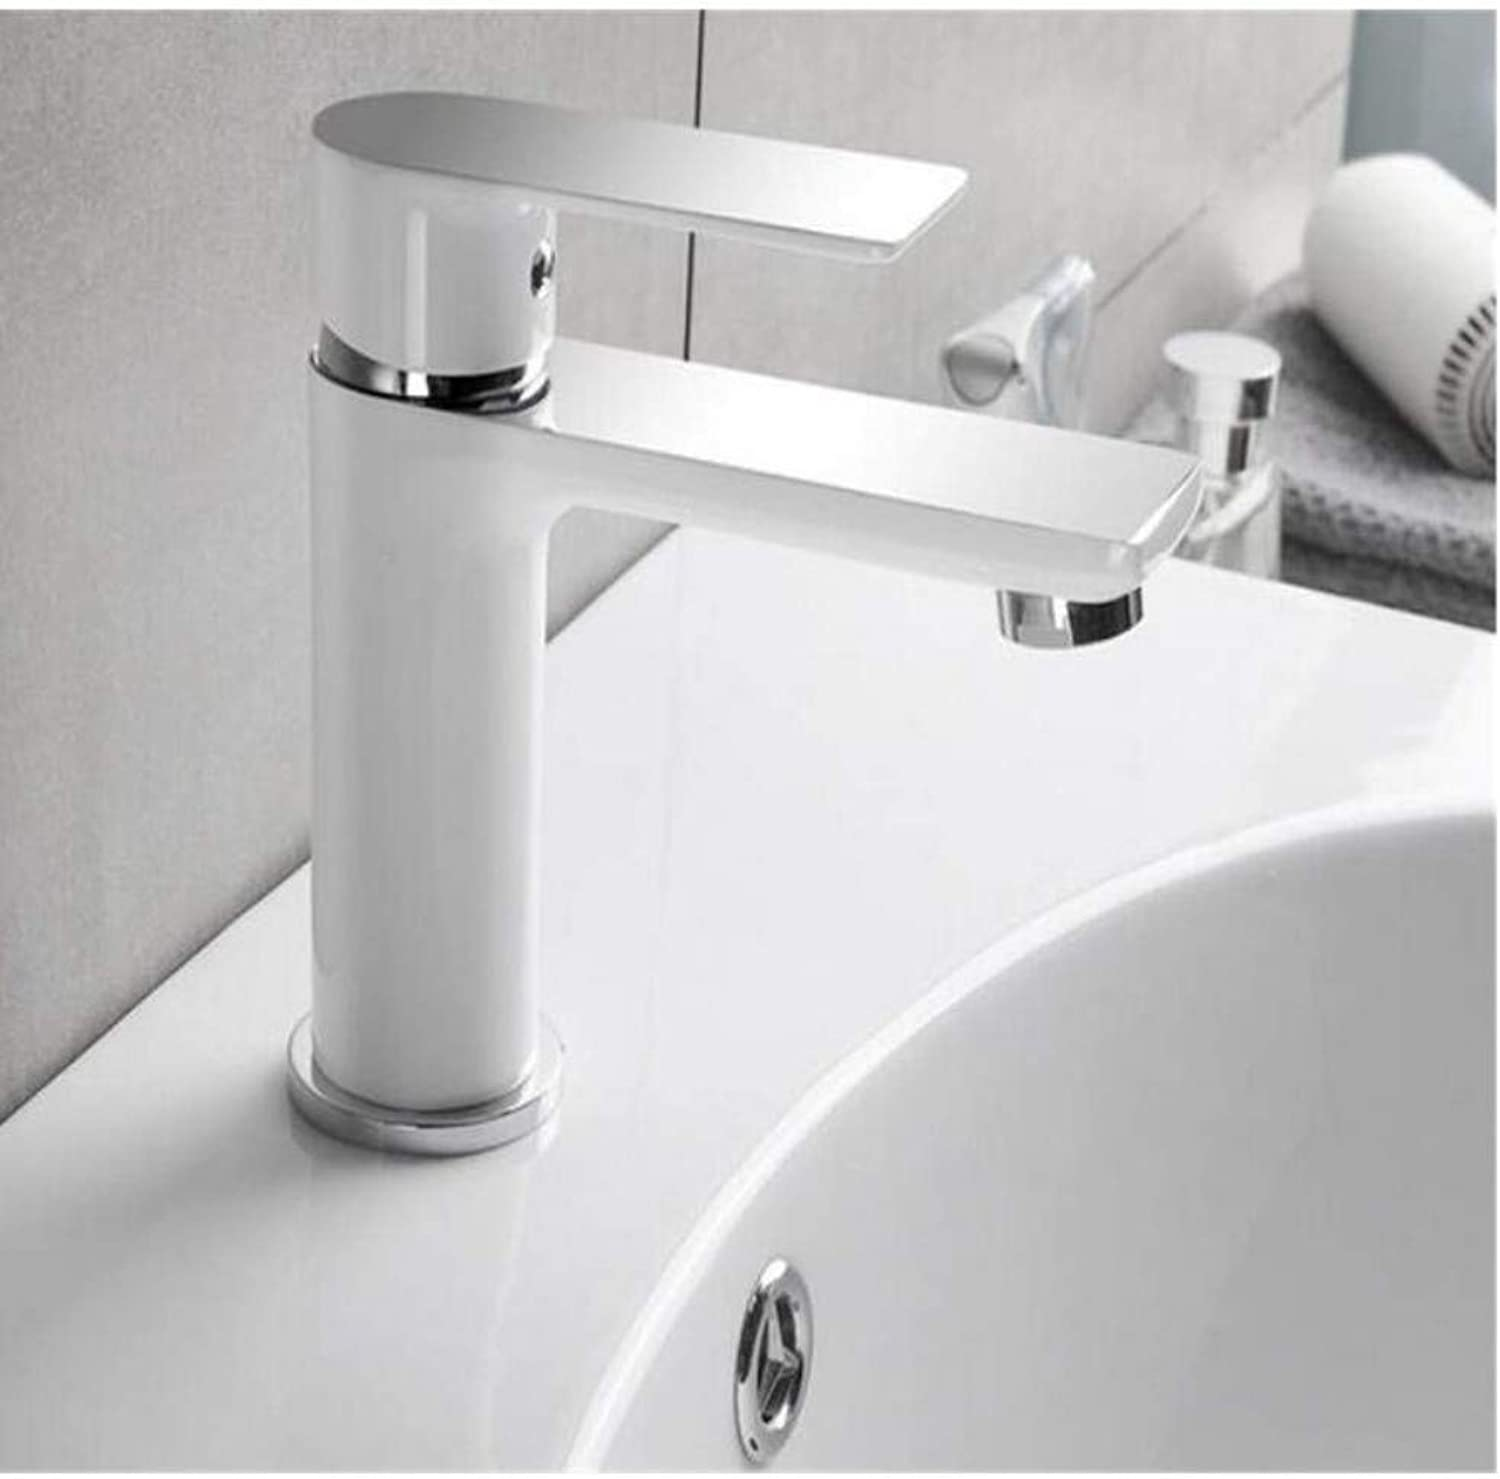 Chrome-Plated Adjustable Temperature-Sensitive Led Faucettap Brass Made Cold Hot Bath Taps Water Basin Faucets